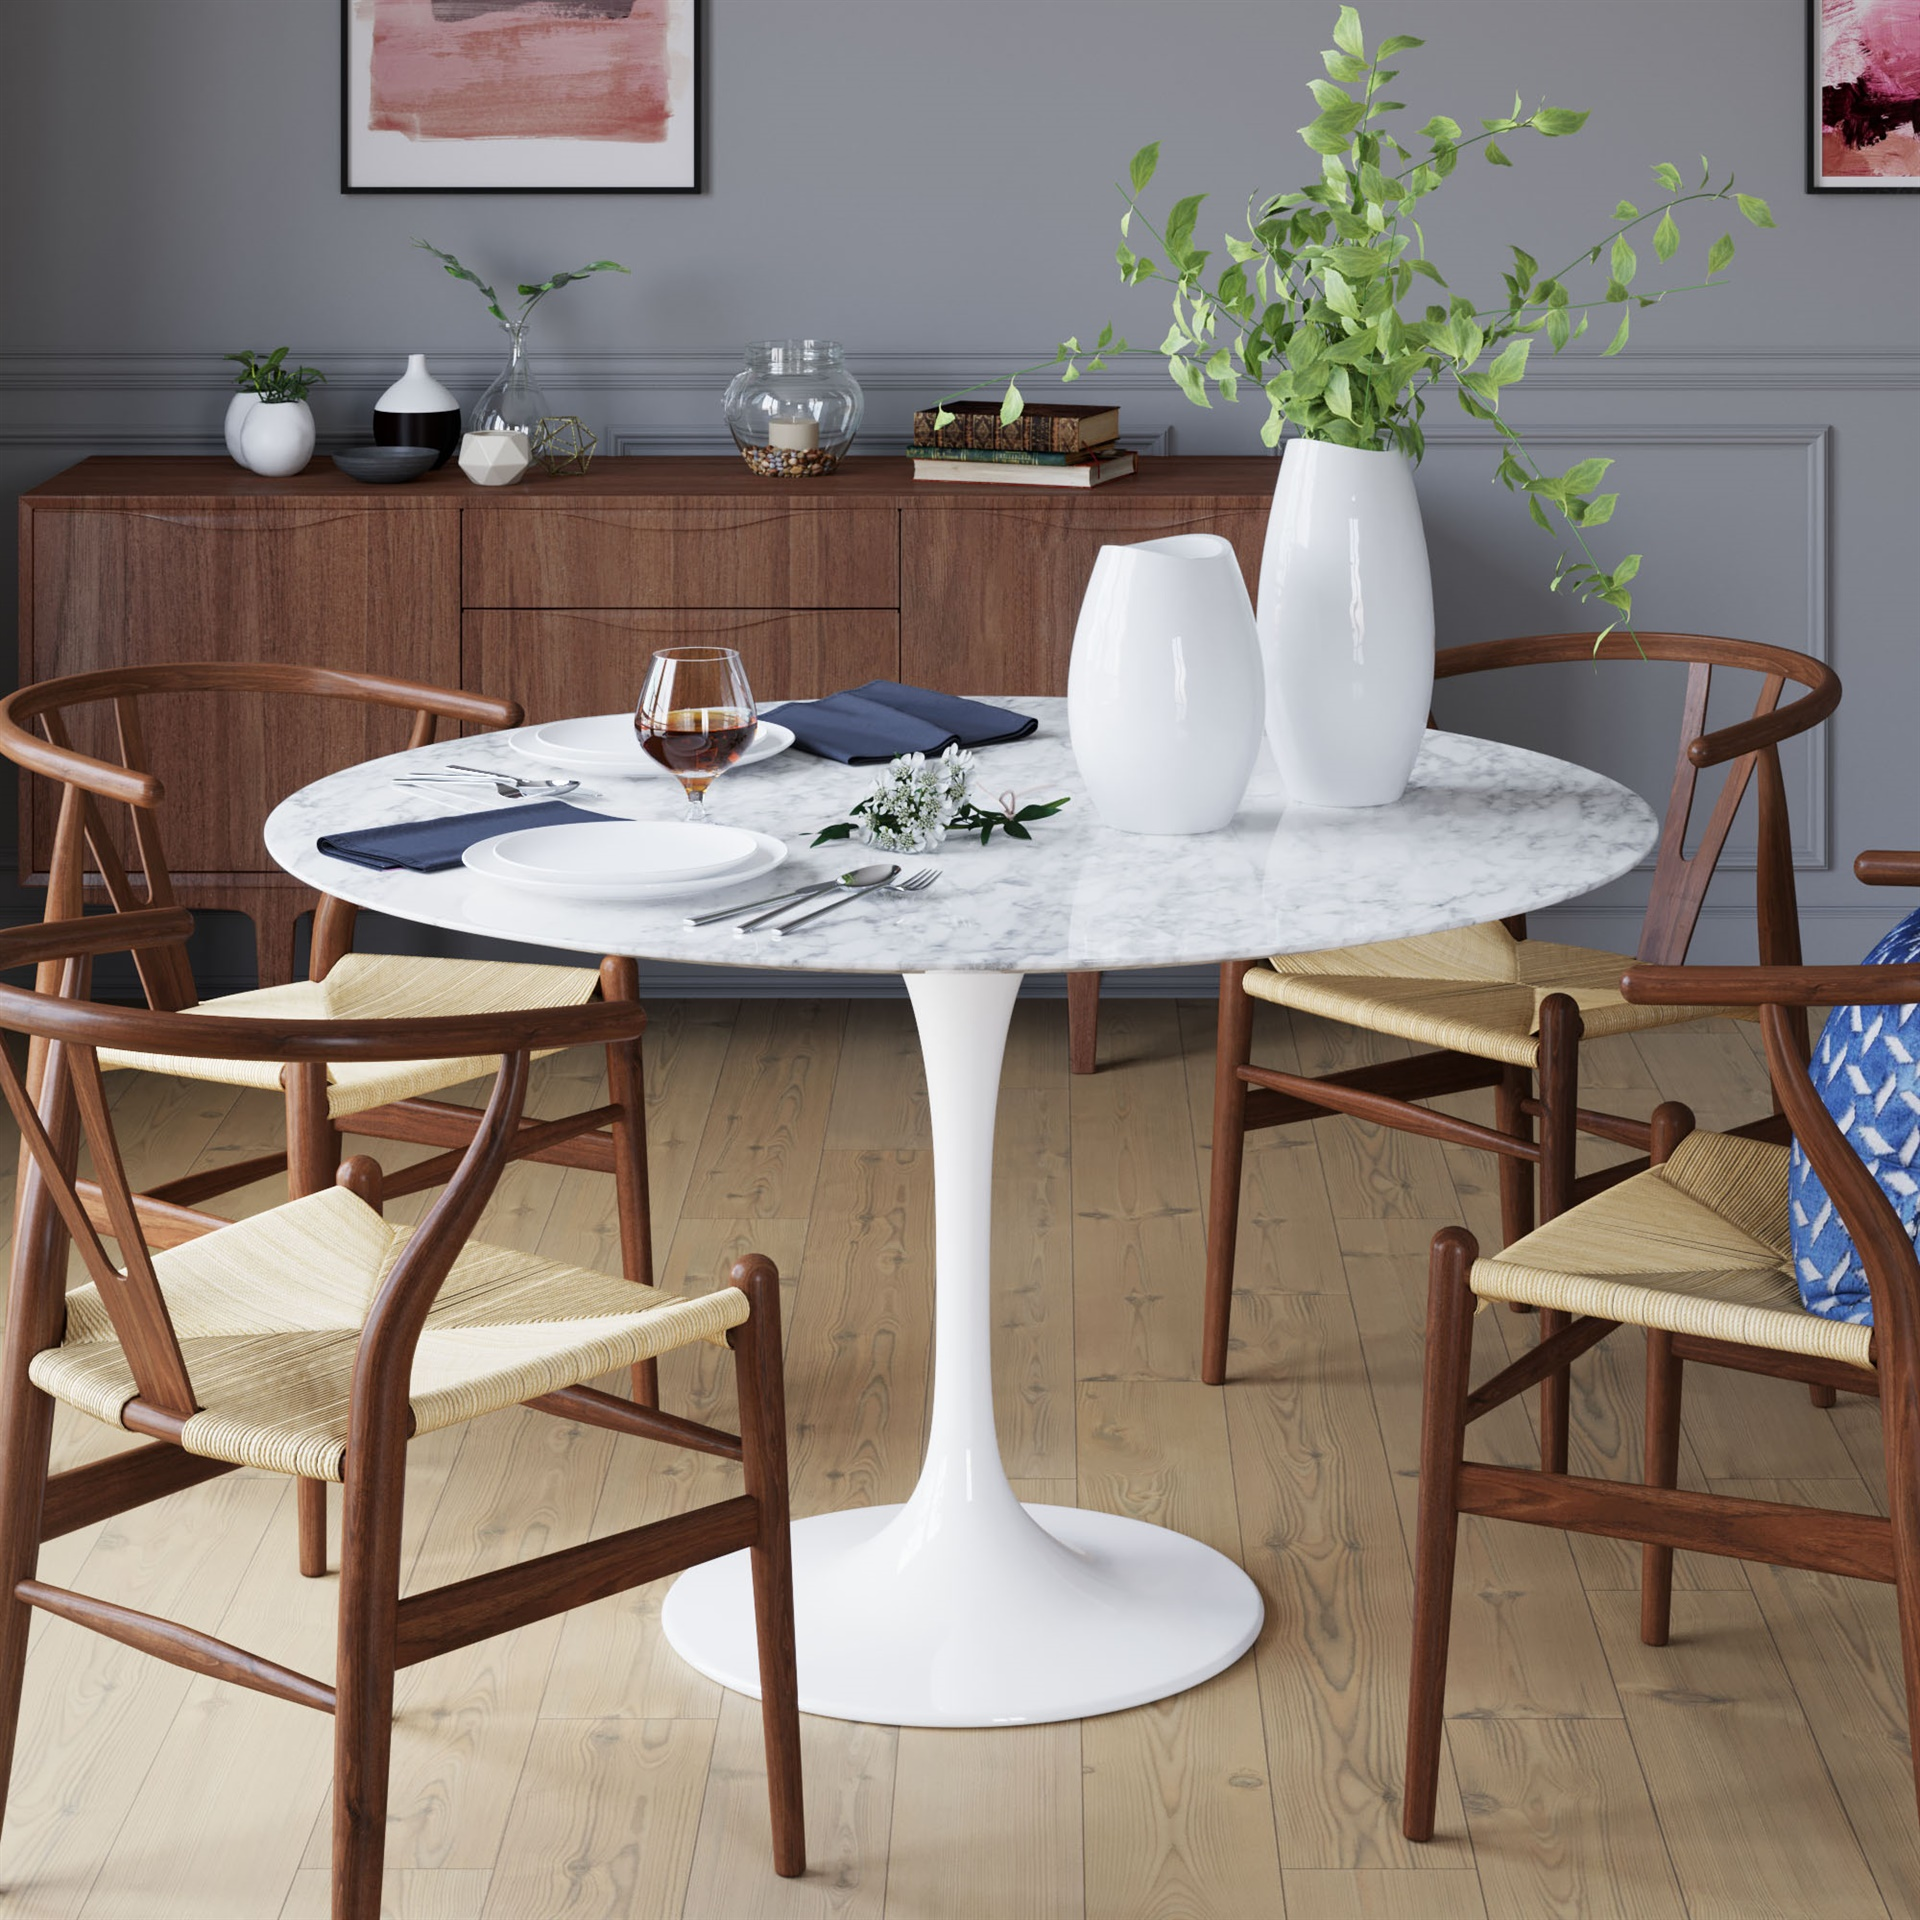 marble dining room furniture. Saarinen Tulip Round Marble Dining Table. \u003e Room Furniture B